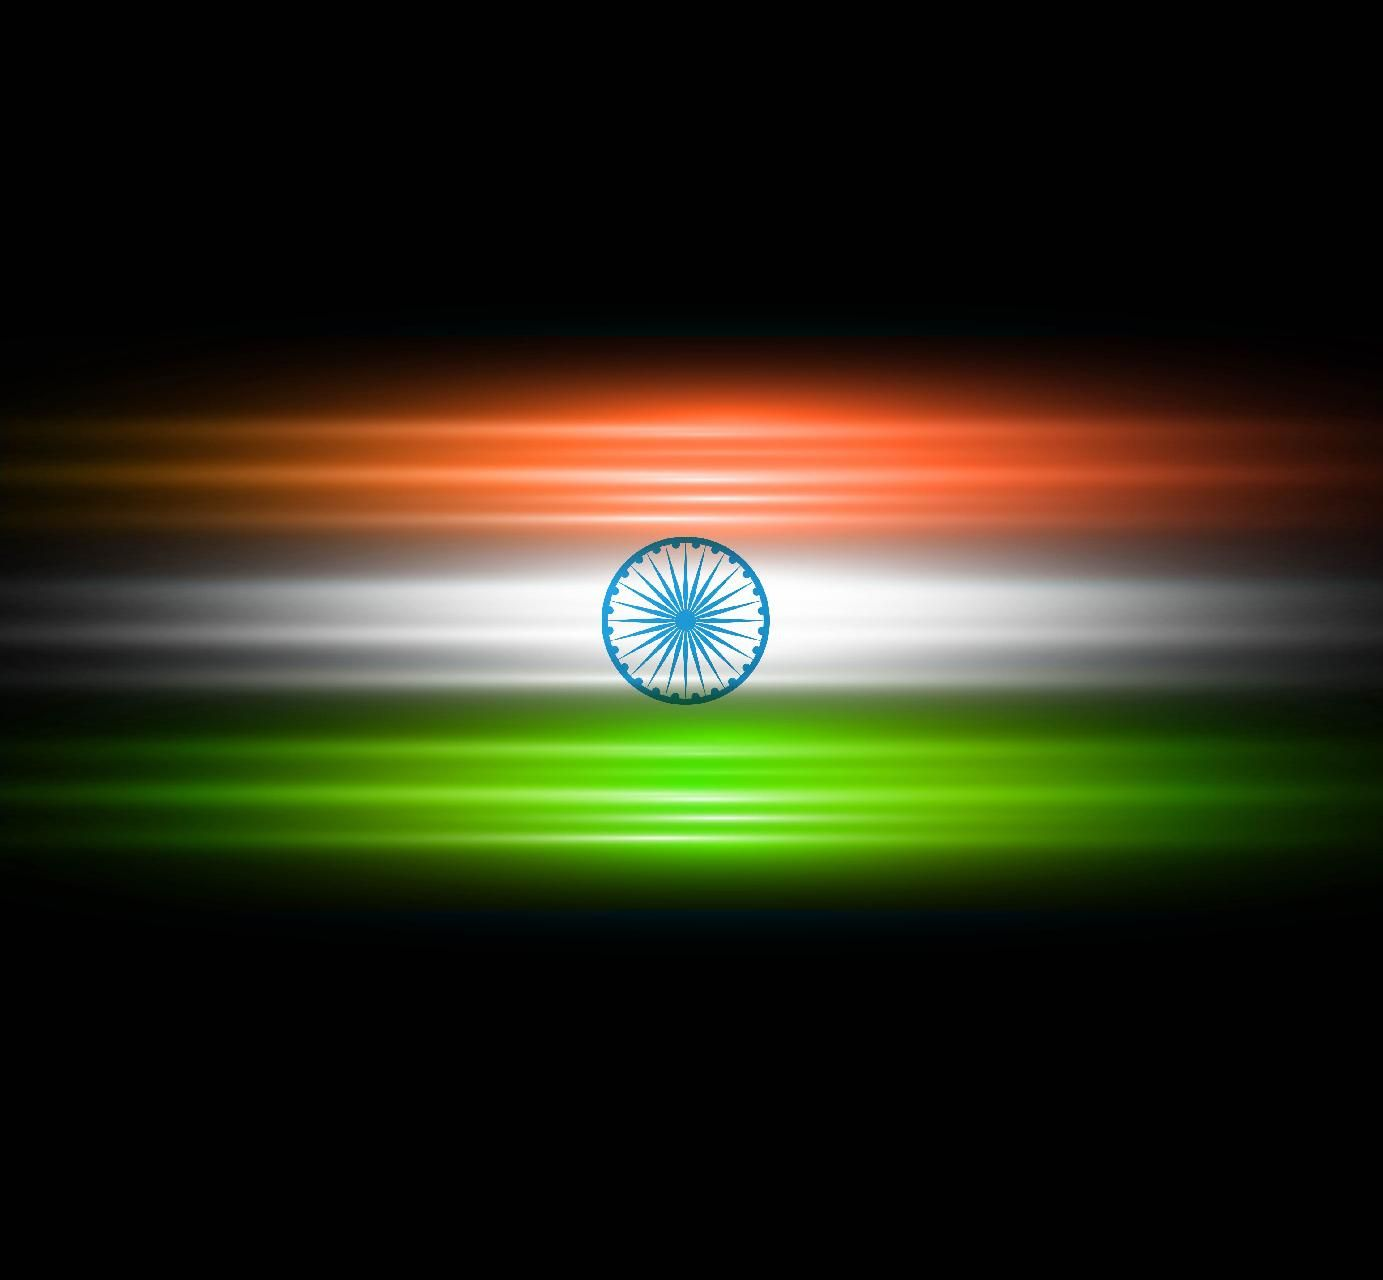 Download India Flag Wallpaper By Live1985 9a Free On Zedge Now Browse Millions Of Popular Flag Wallpa Indian Flag Wallpaper Indian Flag Photos India Flag